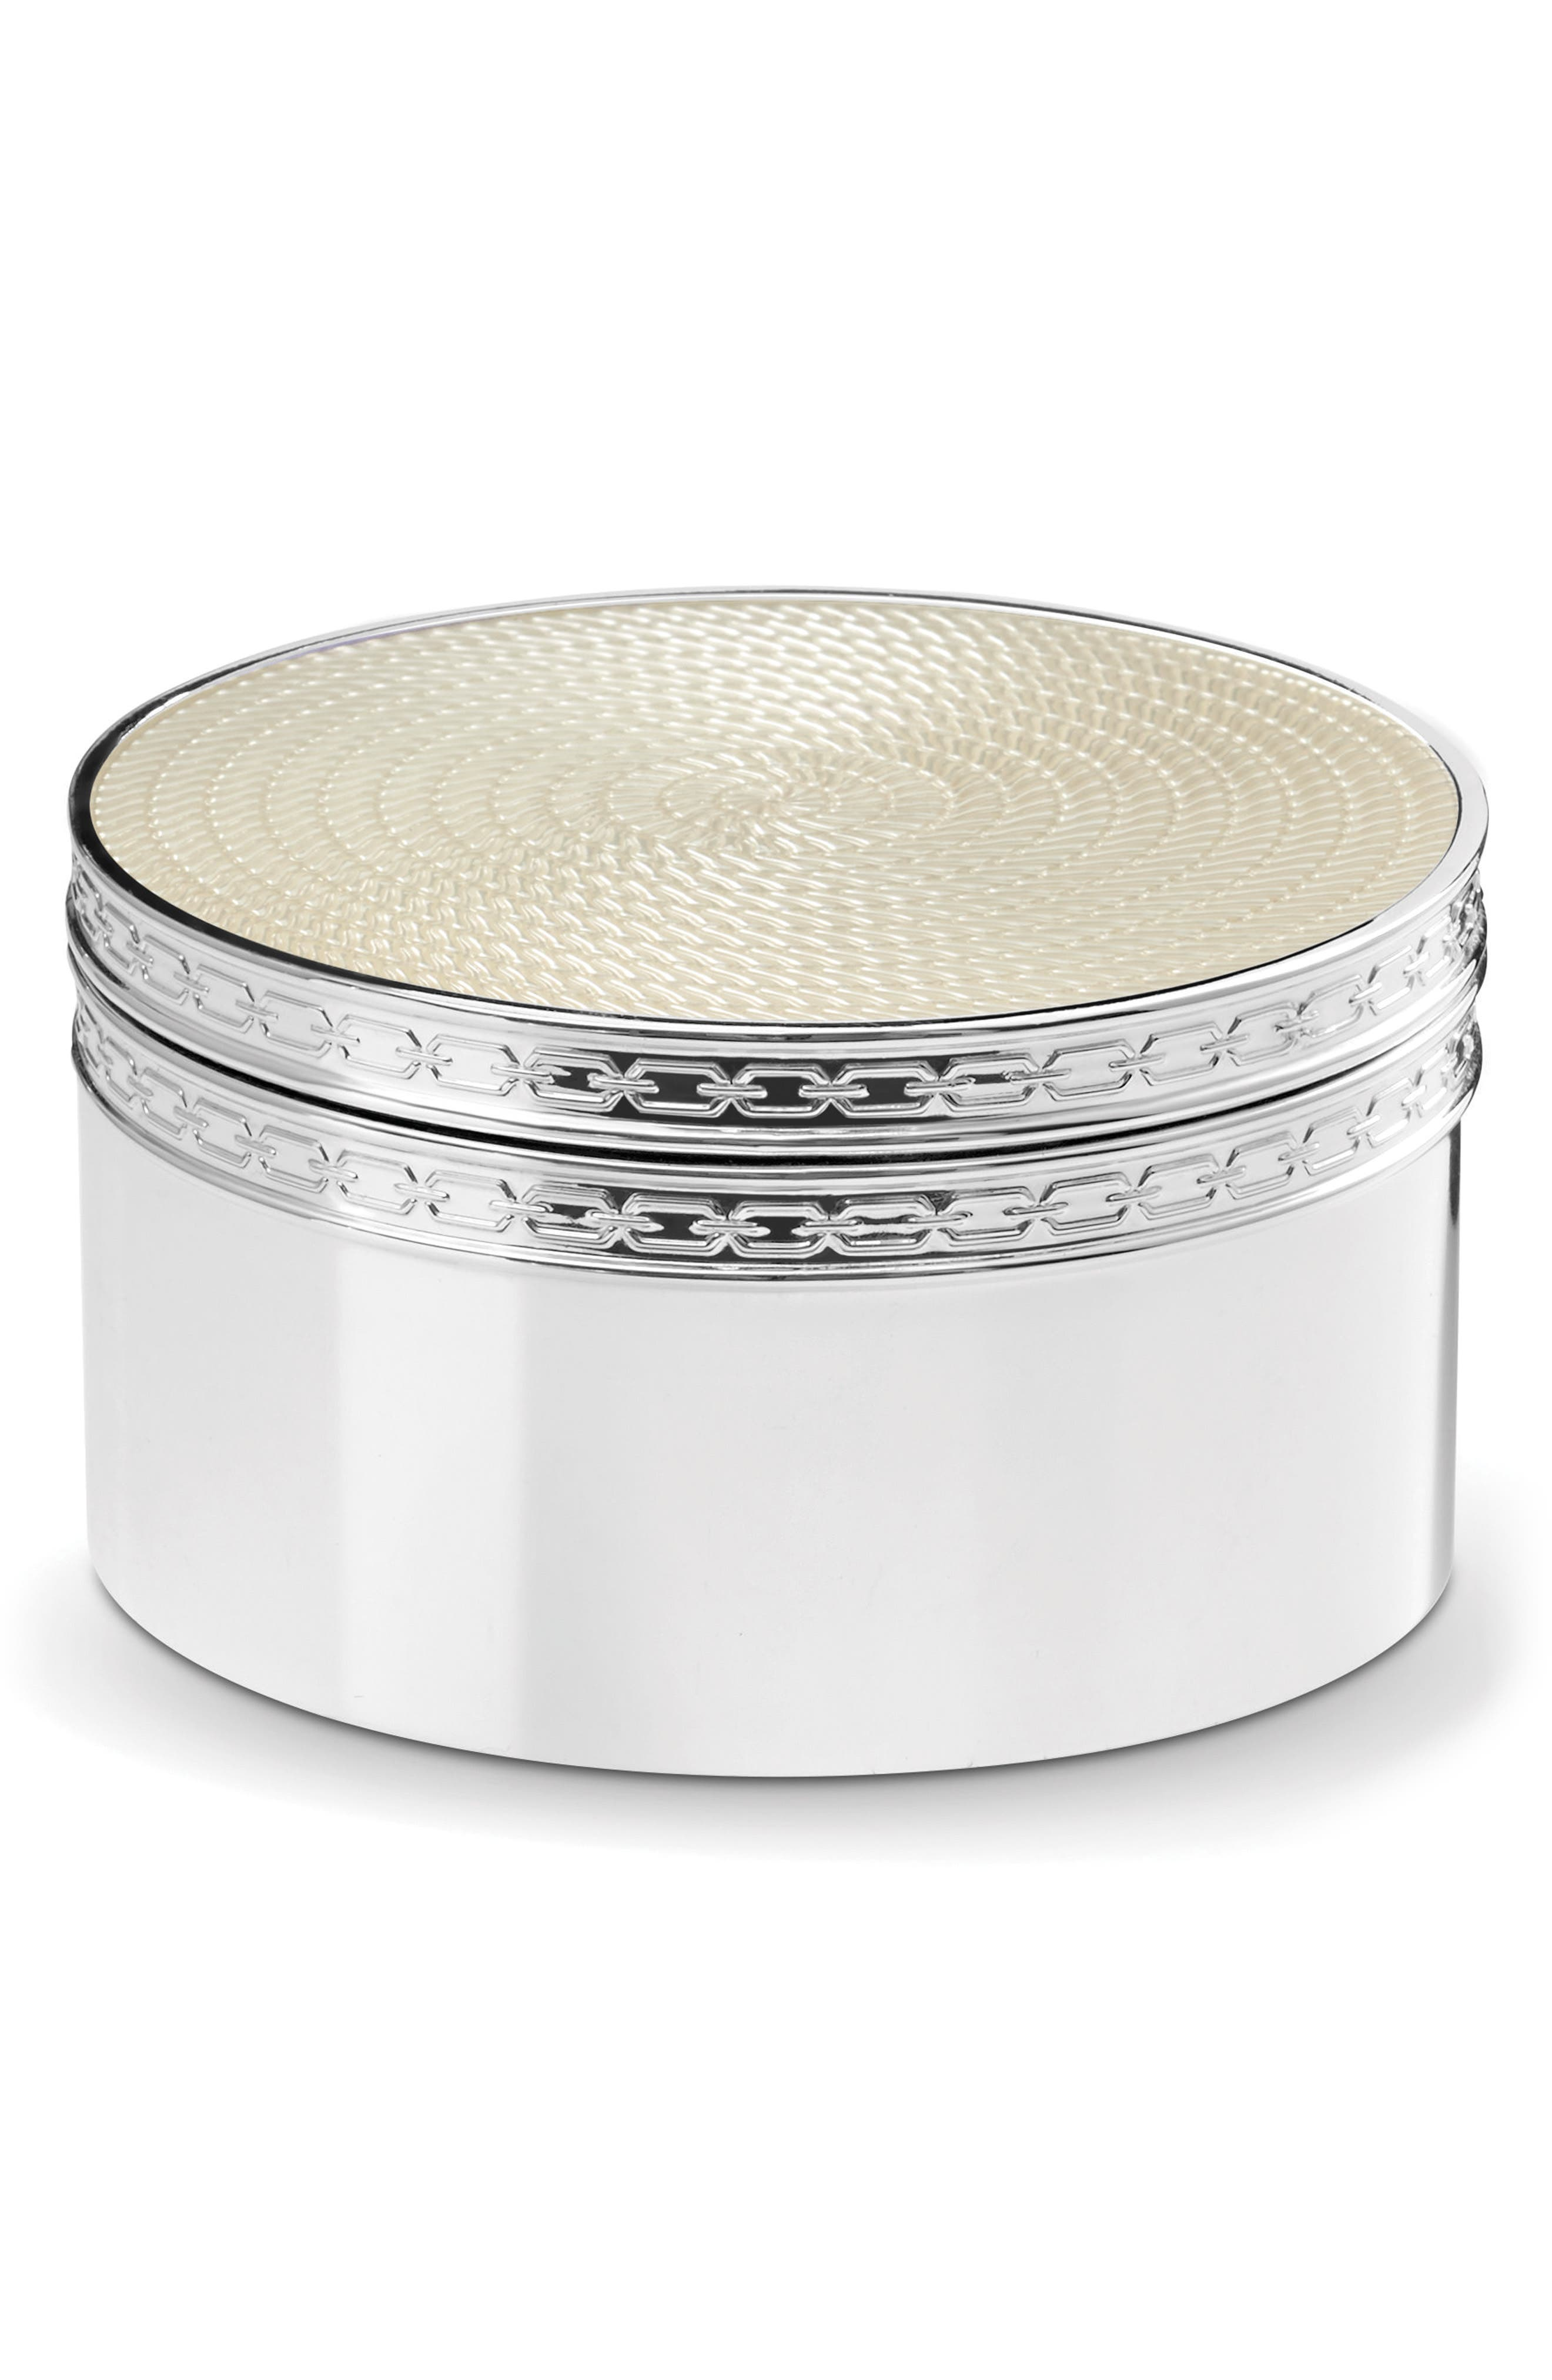 Alternate Image 1 Selected - Vera Wang x Wedgwood With Love Nouveau Trinket Box